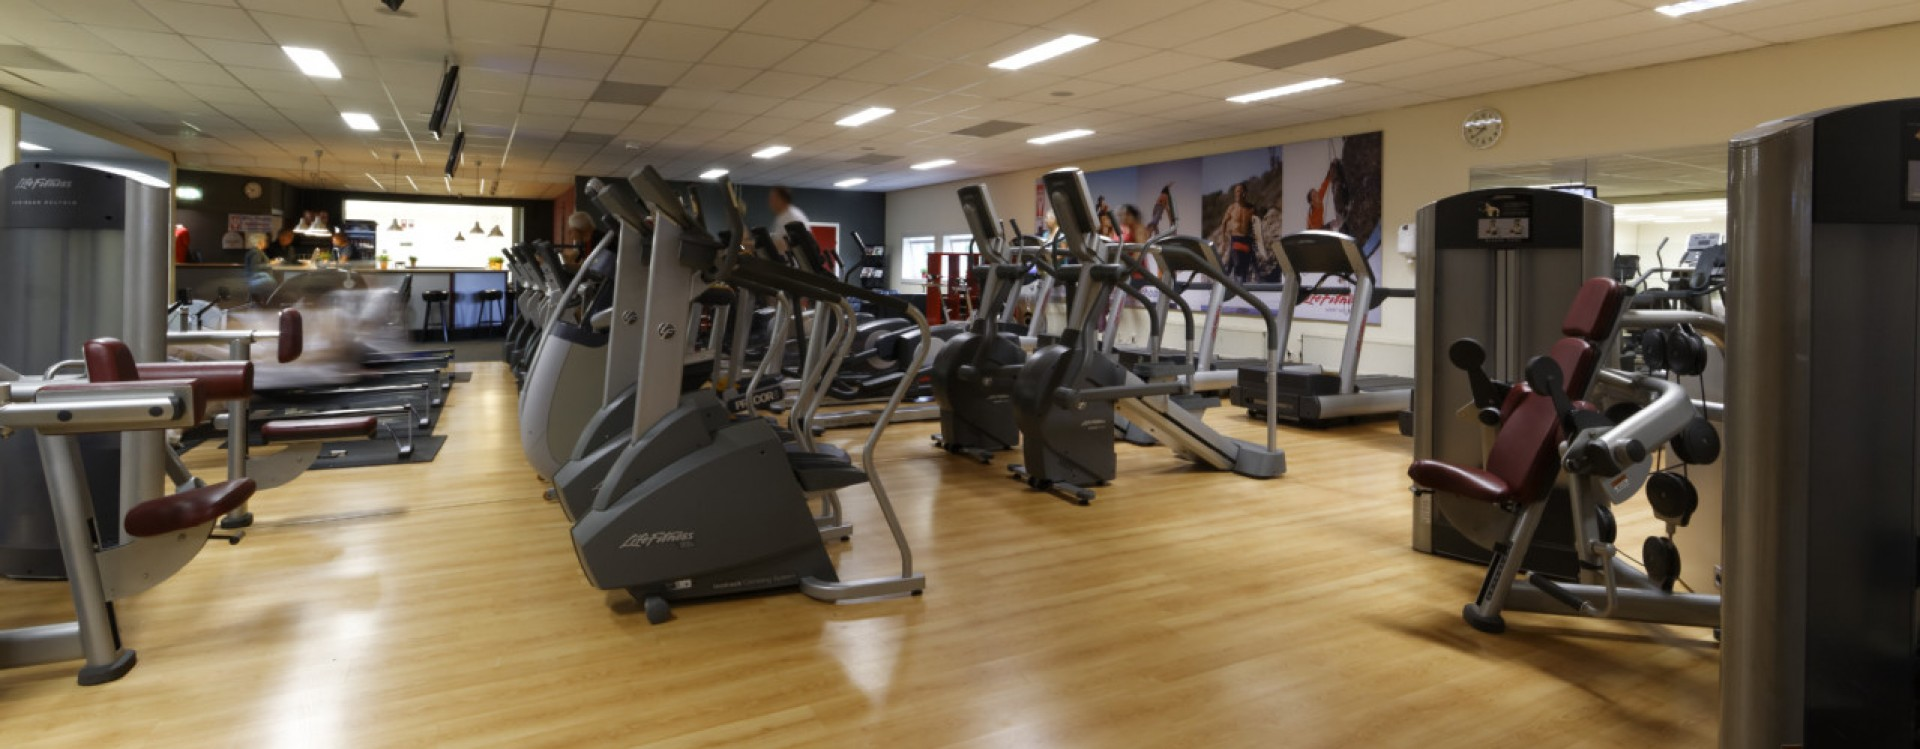 Fitness centrum Ron Haans Weener